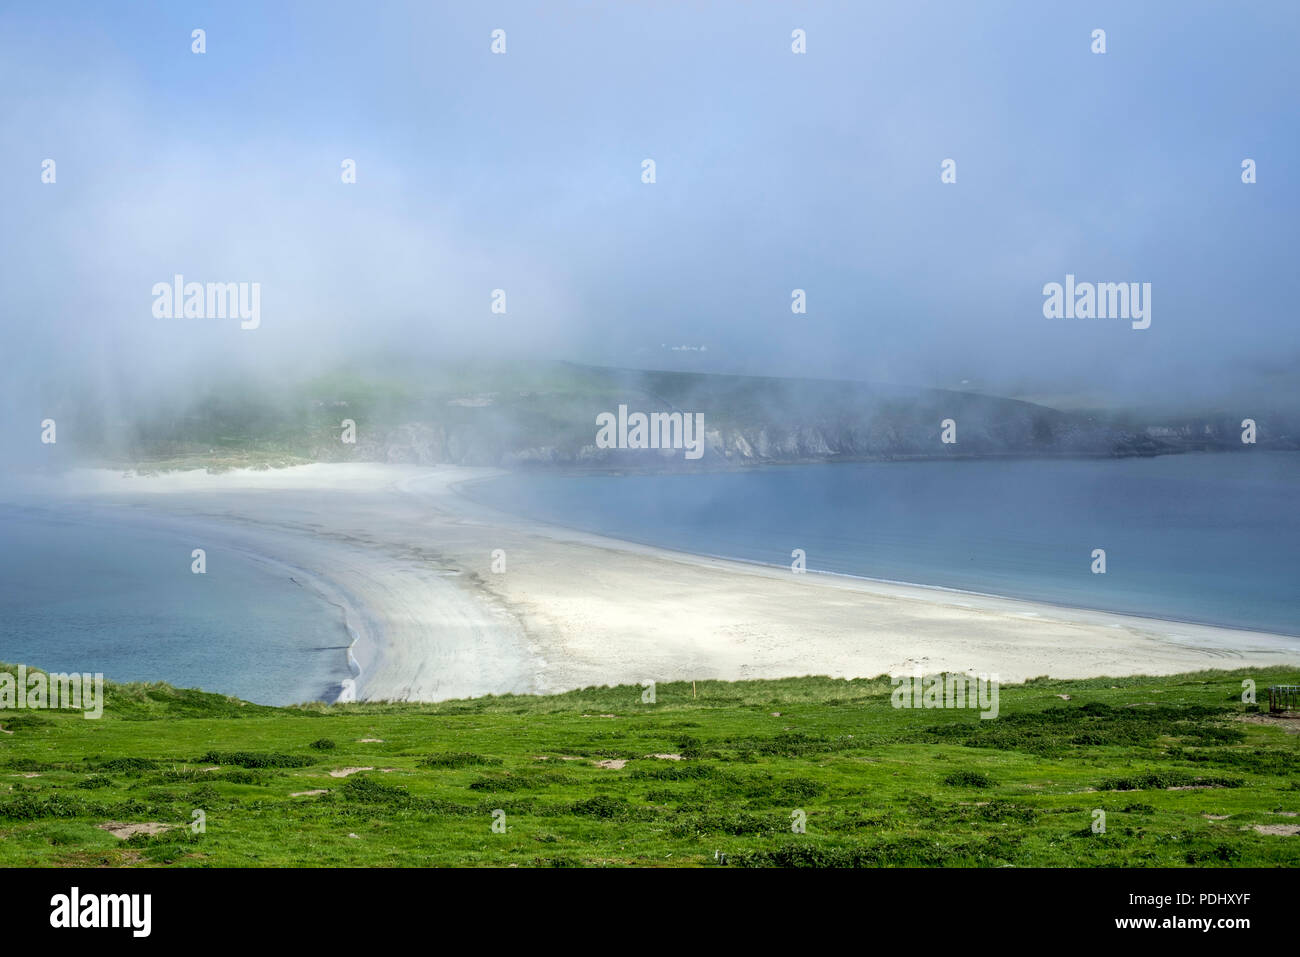 View over sandbar in the mist from St Ninian's Isle, largest tombolo in the UK, Dunrossness, Mainland, Shetland Islands, Scotland, UK - Stock Image